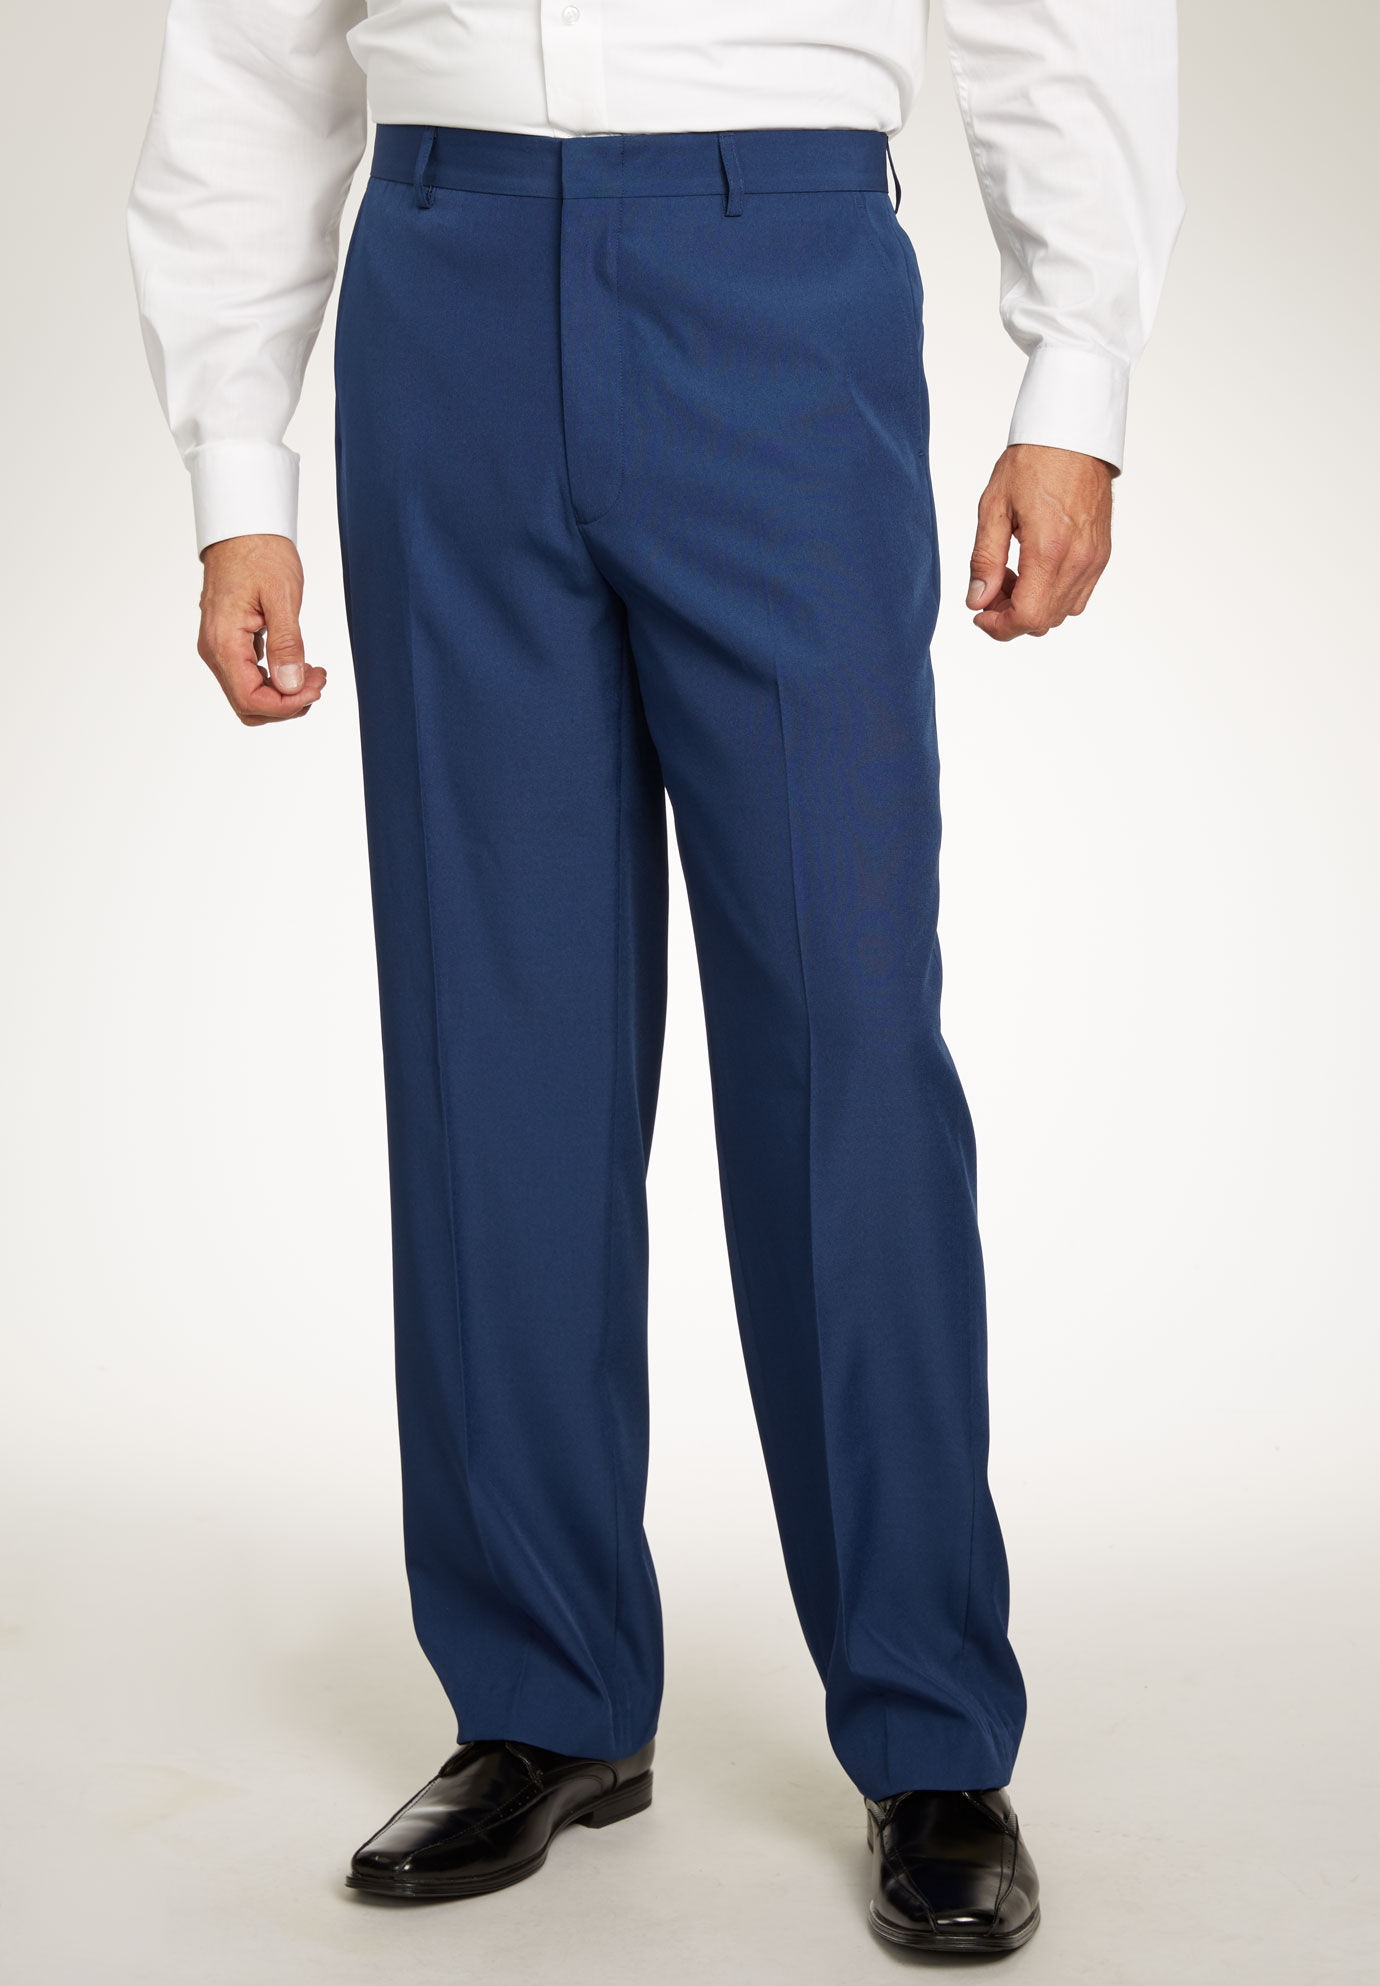 Easy-Care Plain Front Inner Stretch Dress Pants by KS Signature,